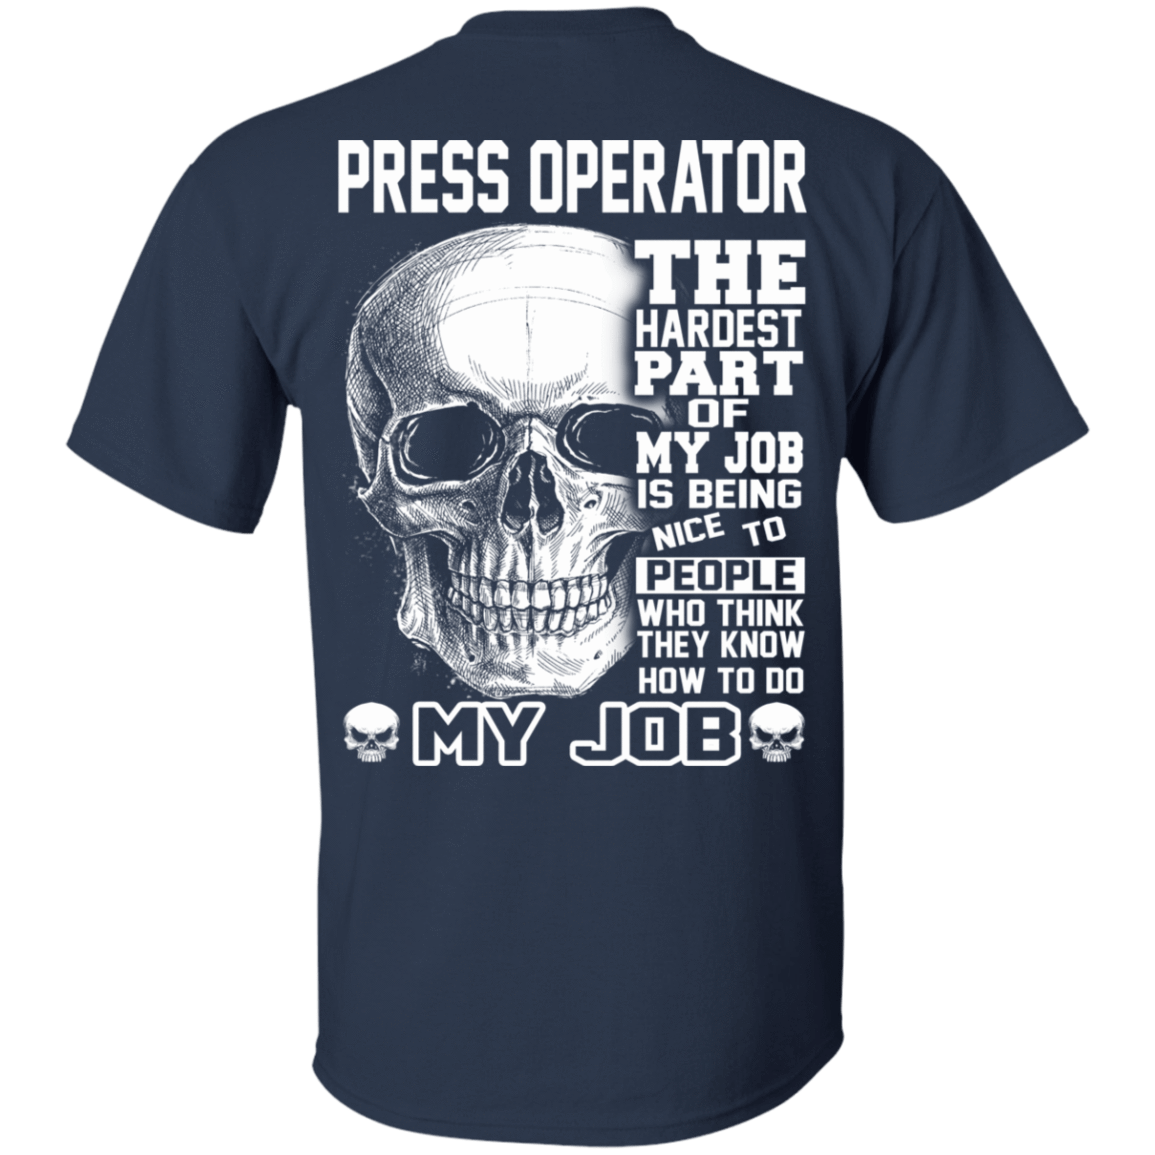 Press Operator The Hardest Part Of My Job 22-111-72798857-250 - Tee Ript